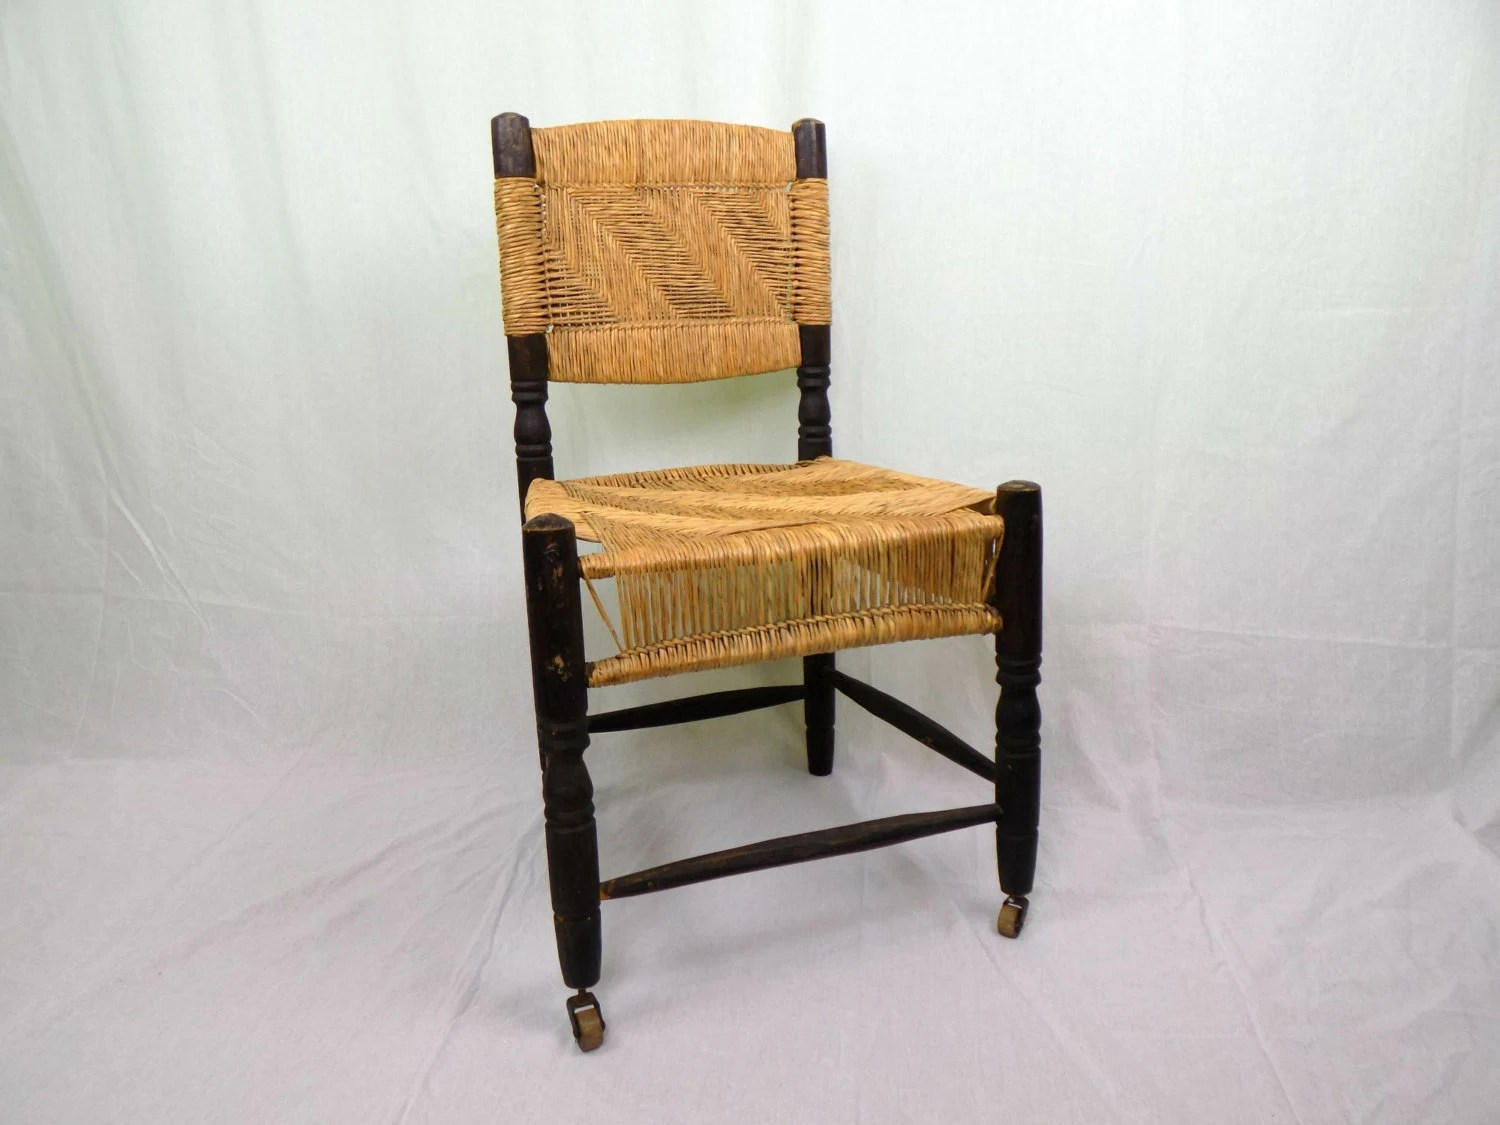 how to rush a chair posh covers and bows durham antique woven seat back by 1littletreasureshop